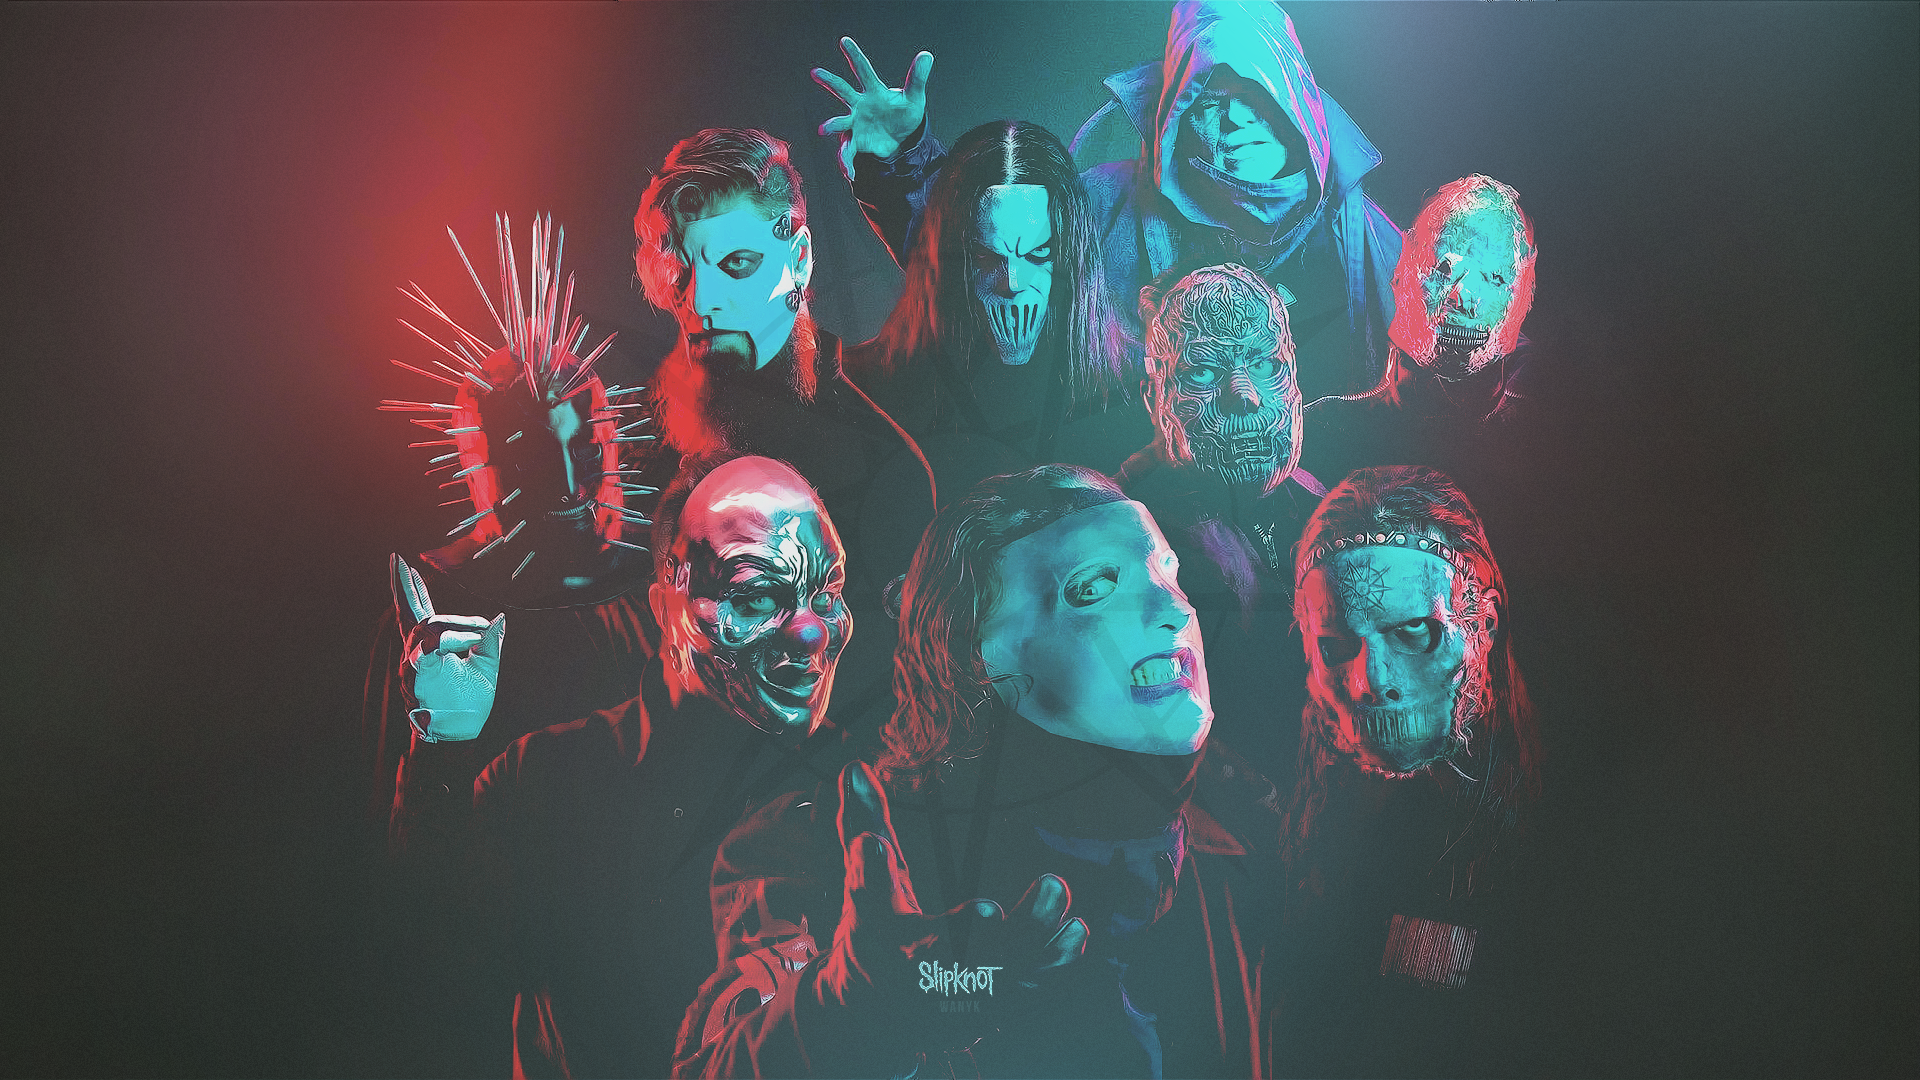 Slipknot WANYK We Are Not Your Kind 2019 1080P